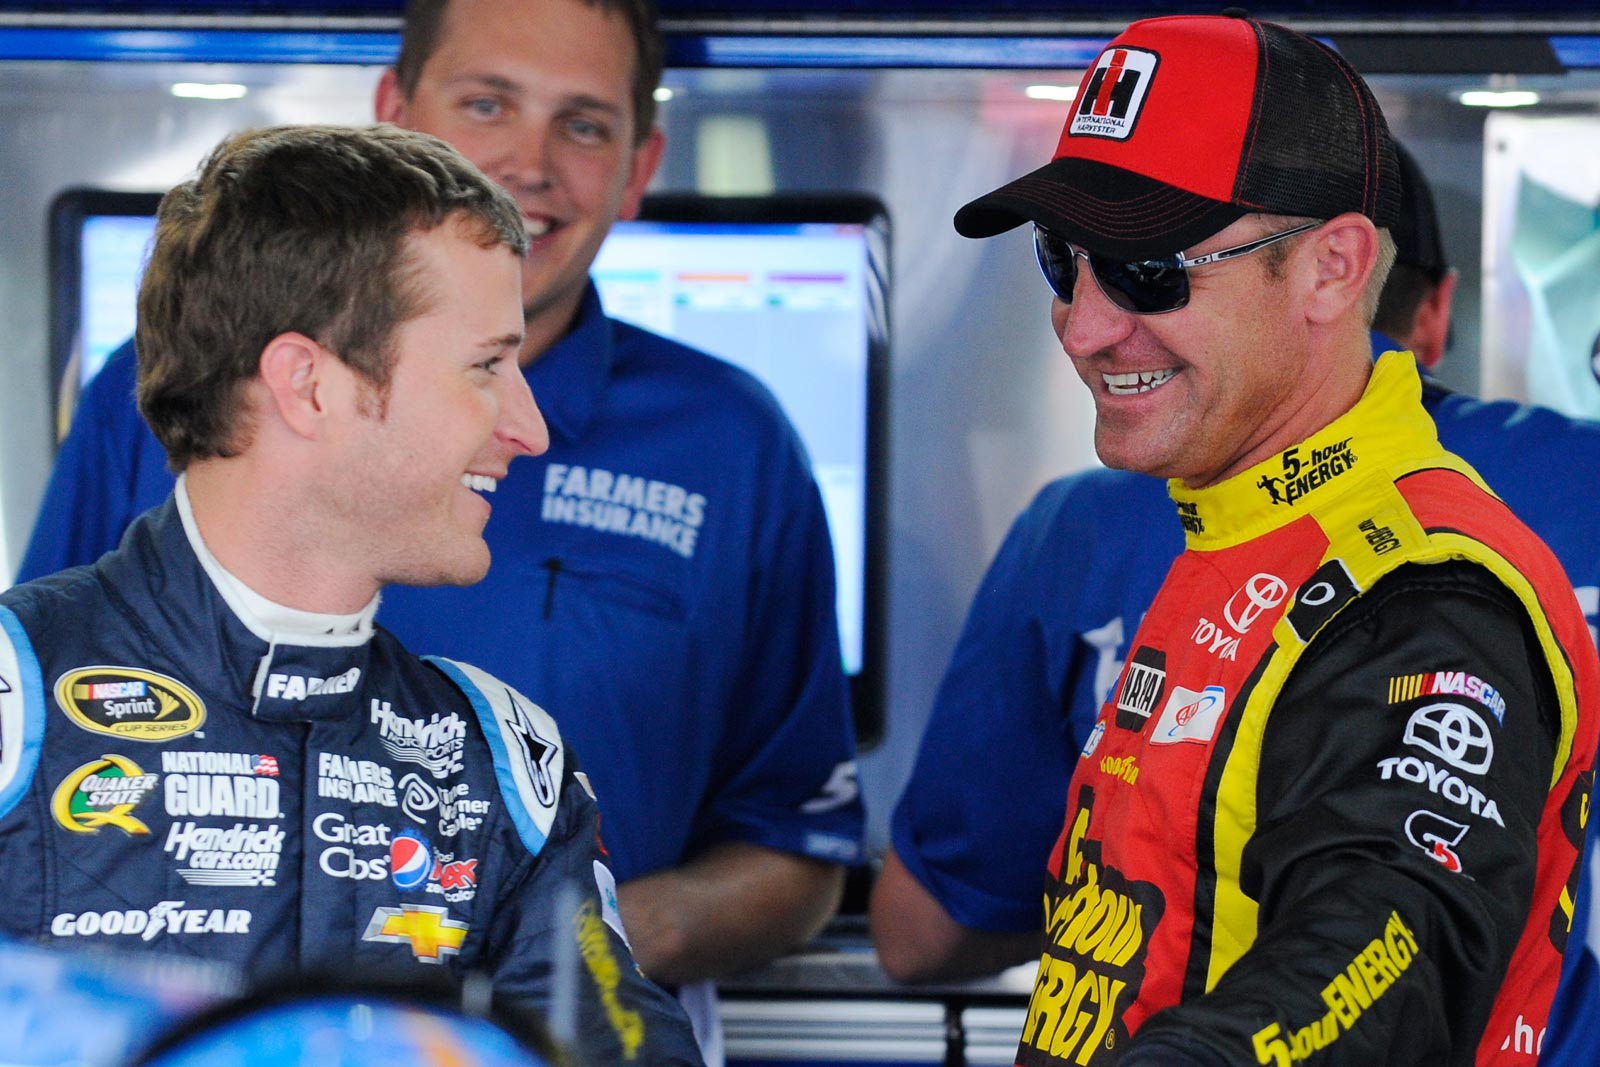 2013-Charlotte-All-Star-Practice-Kasey-Kahne-Clint-Bowyer